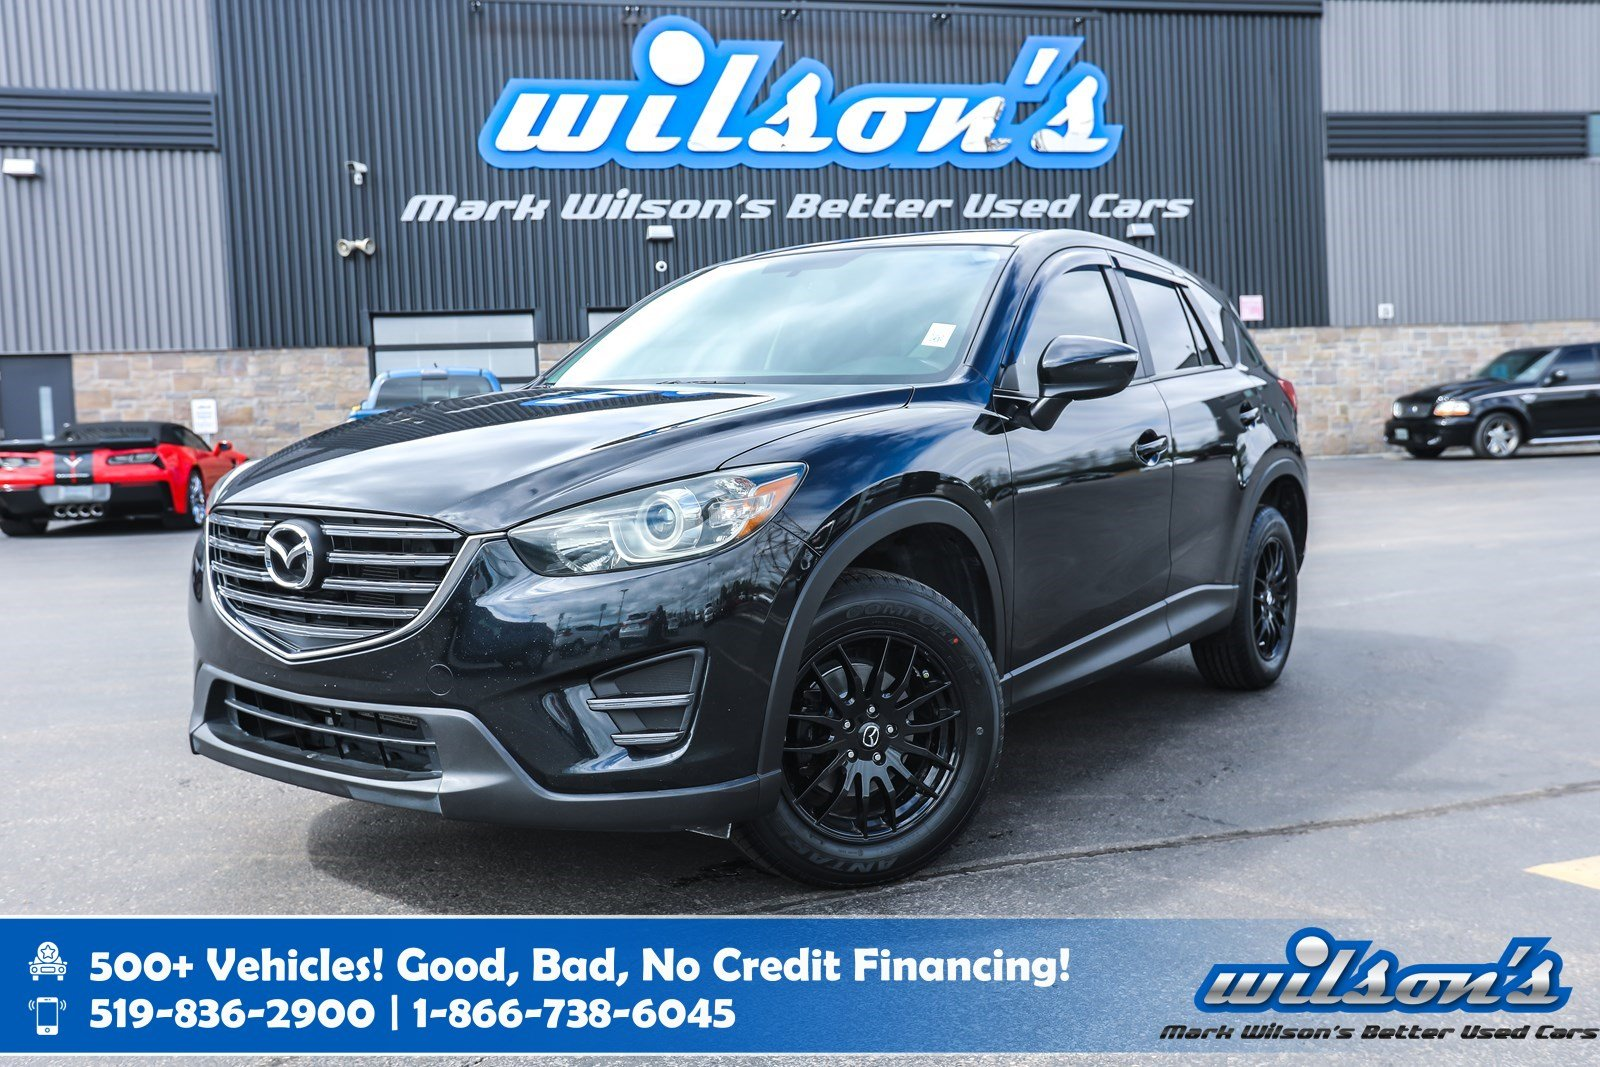 Certified Pre-Owned 2016 Mazda CX-5 GX with NEW TIRES! Push Button Start, Cruise Control, Power Package, Steering Radio Controls & more!